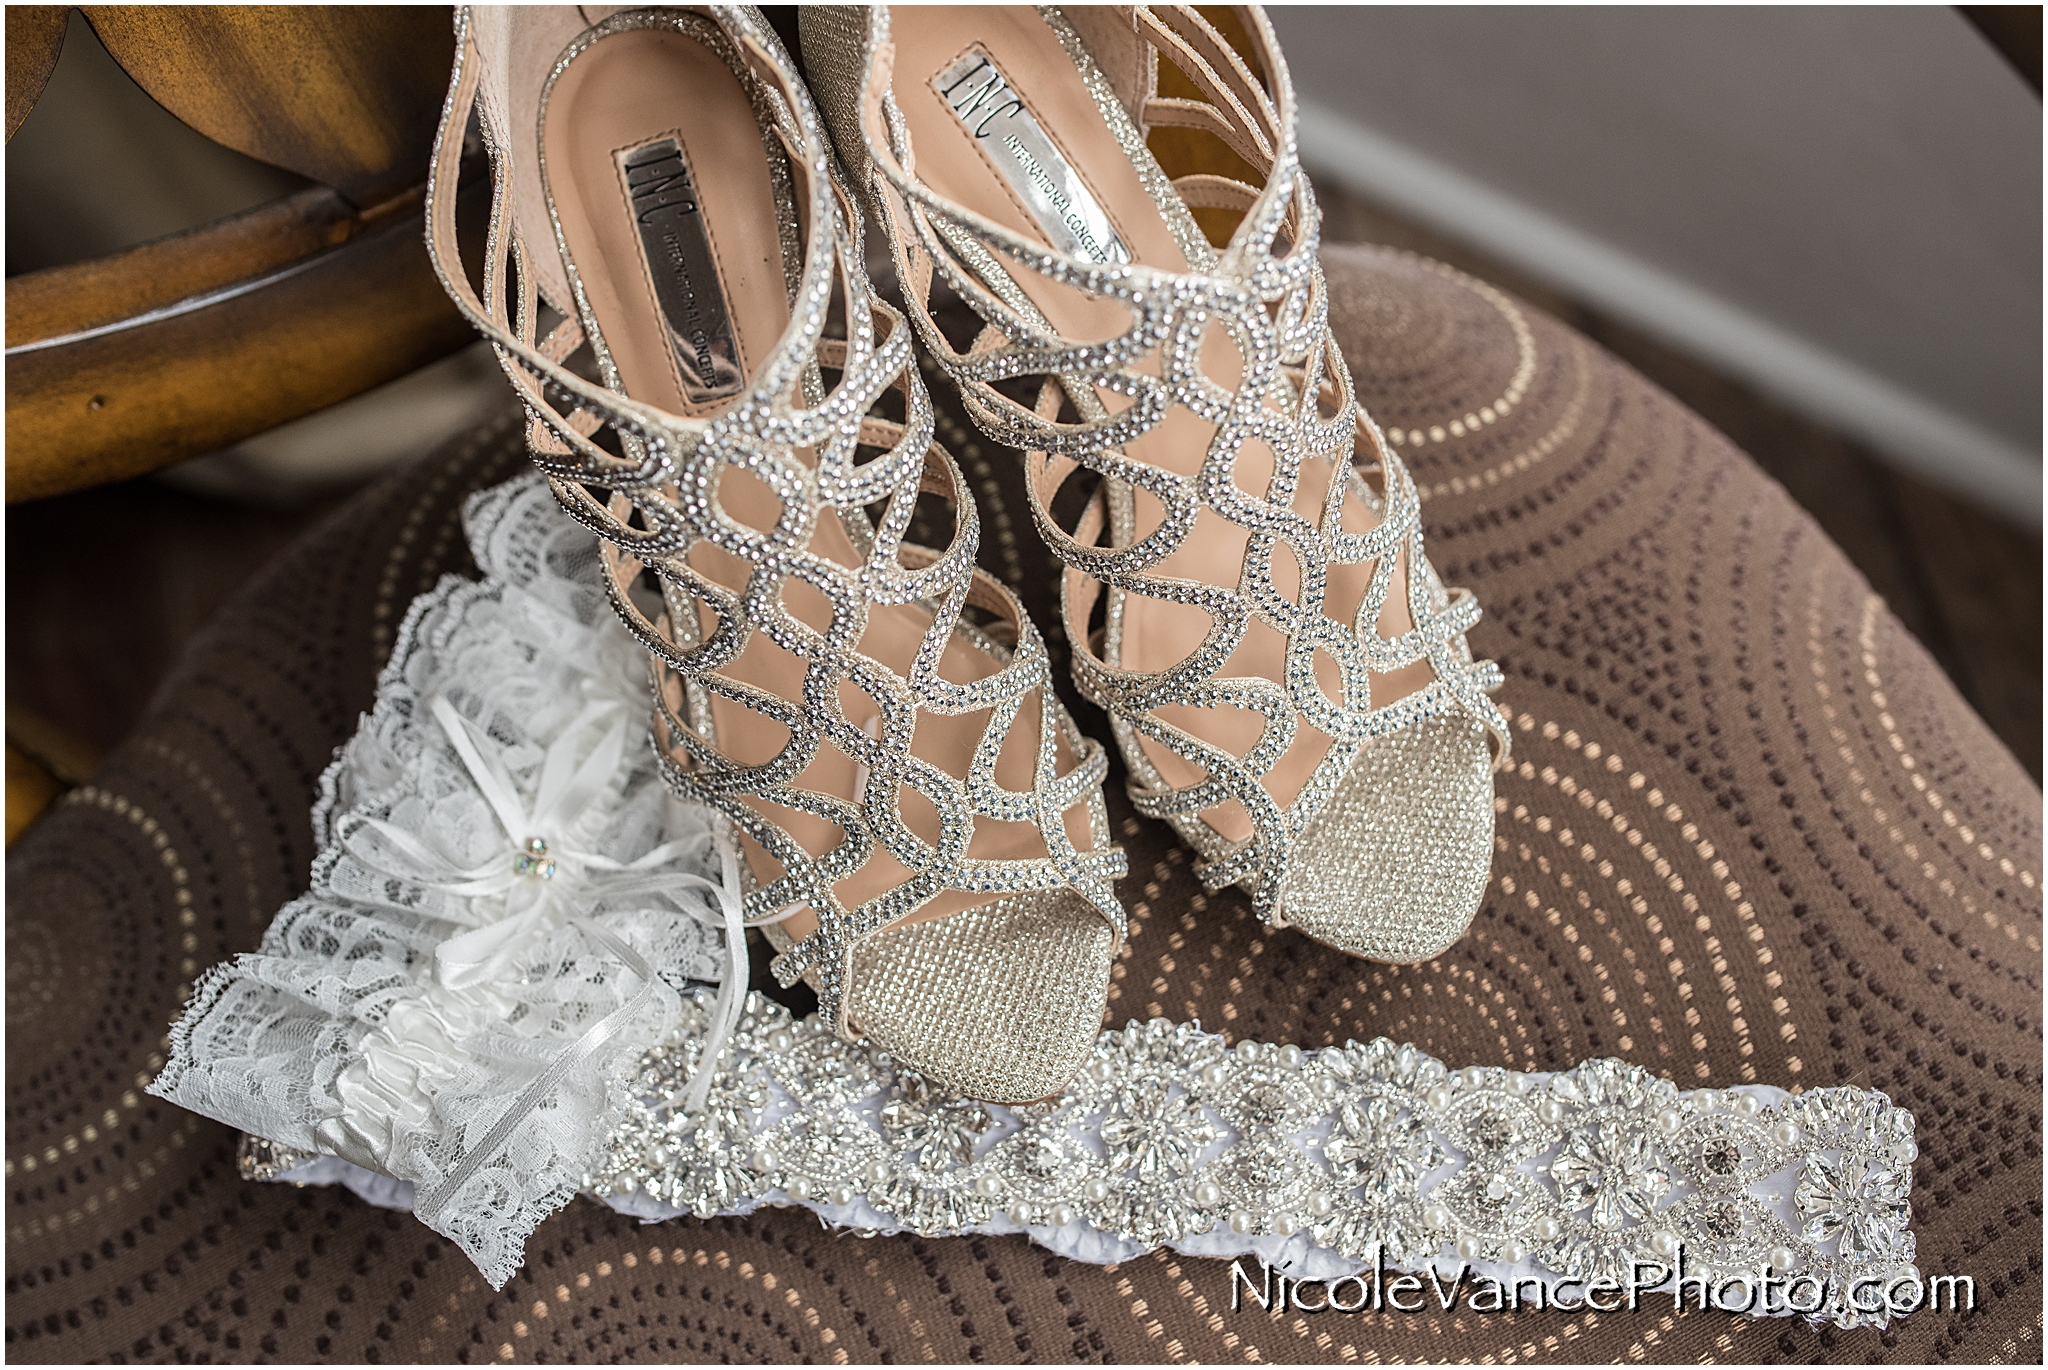 Bridal shoes, beaded belt and garter await their big day.